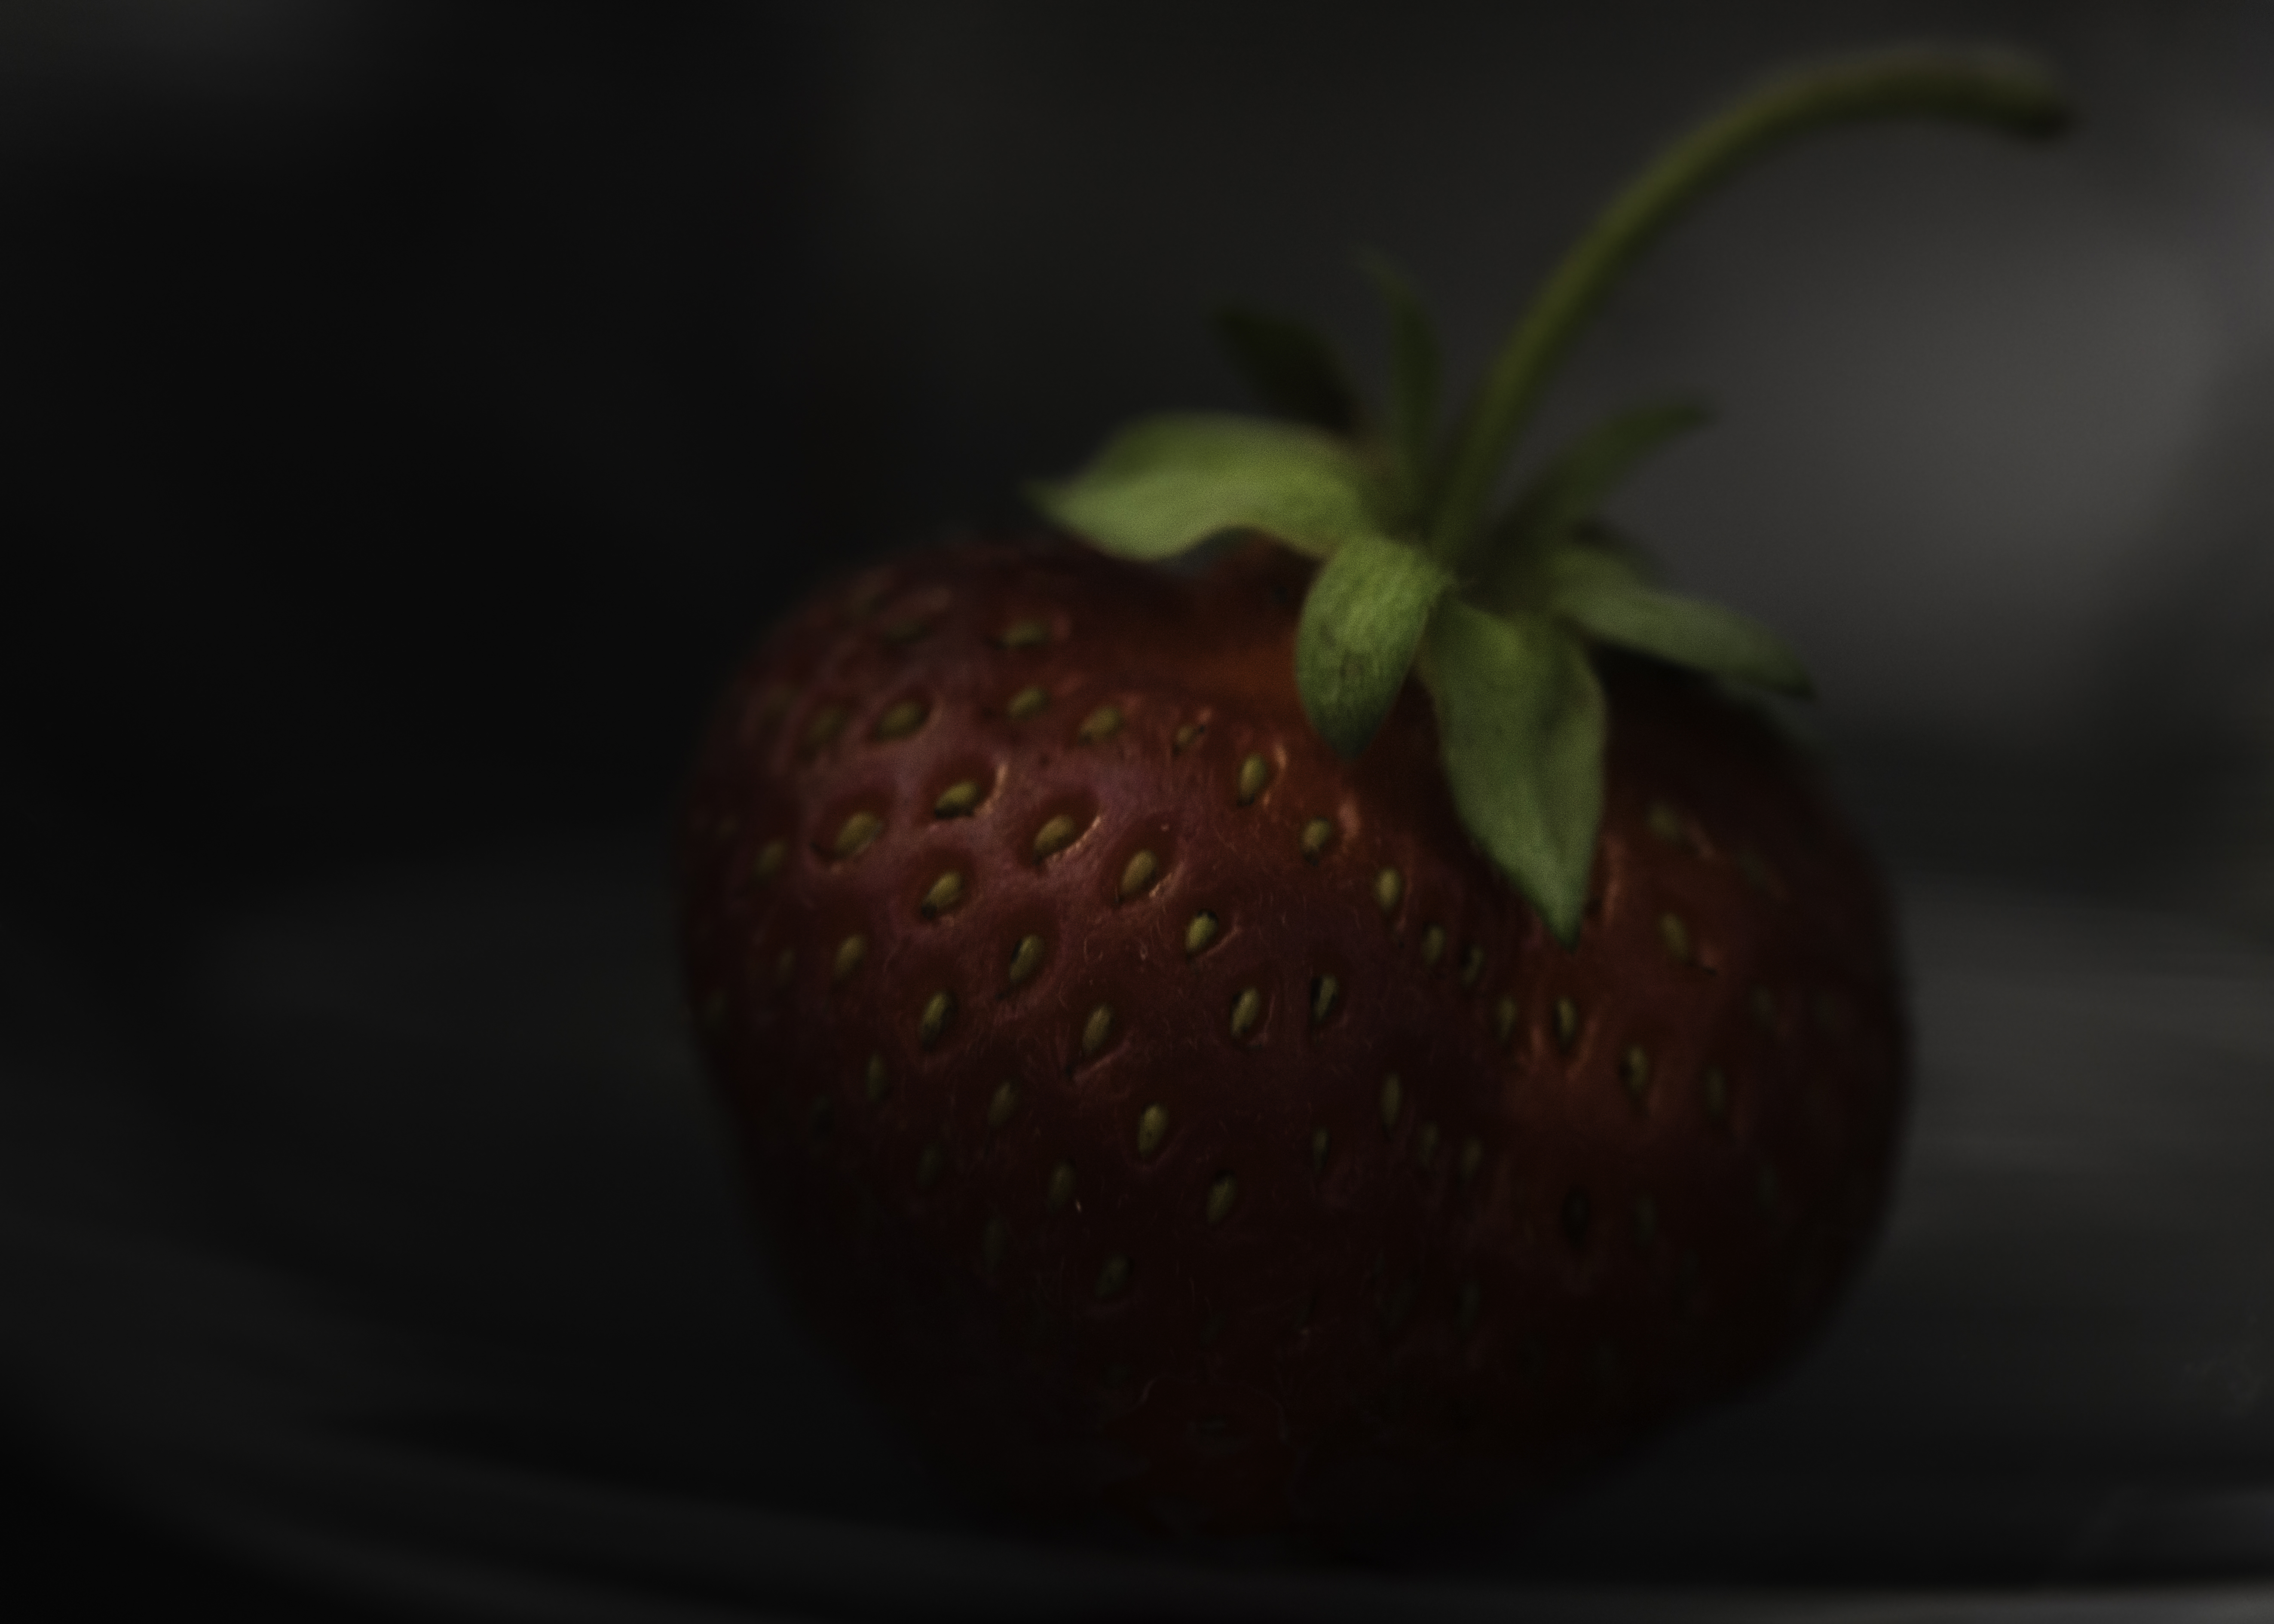 THE ART OF BEING A BERRY